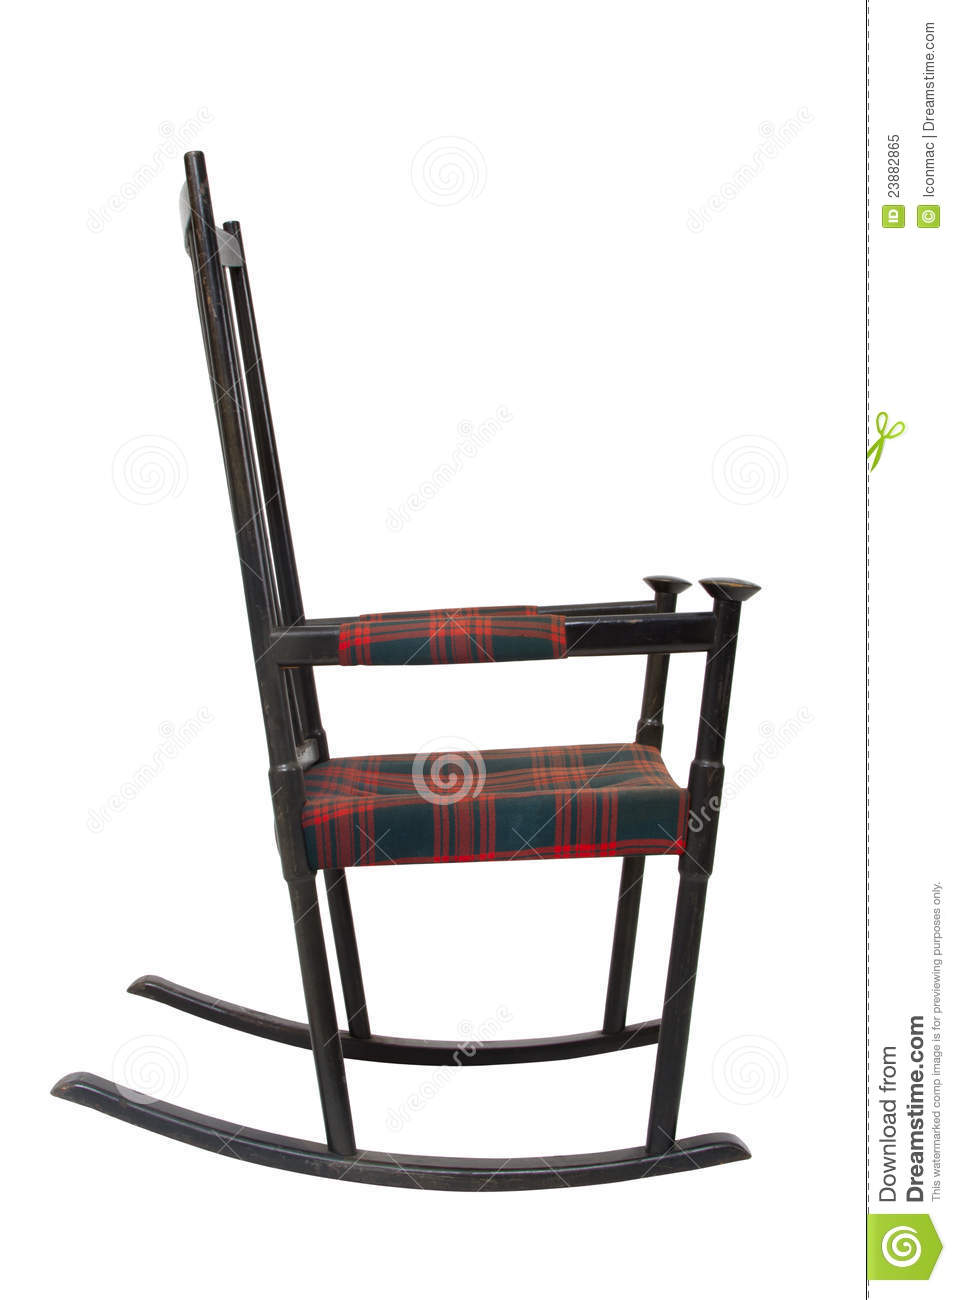 lady in a rocking chair Fancy seeing you here recently deceased puerto rican woman, 80, attends her own wake sat in a rocking chair and wearing her wedding dress just as she had wanted.